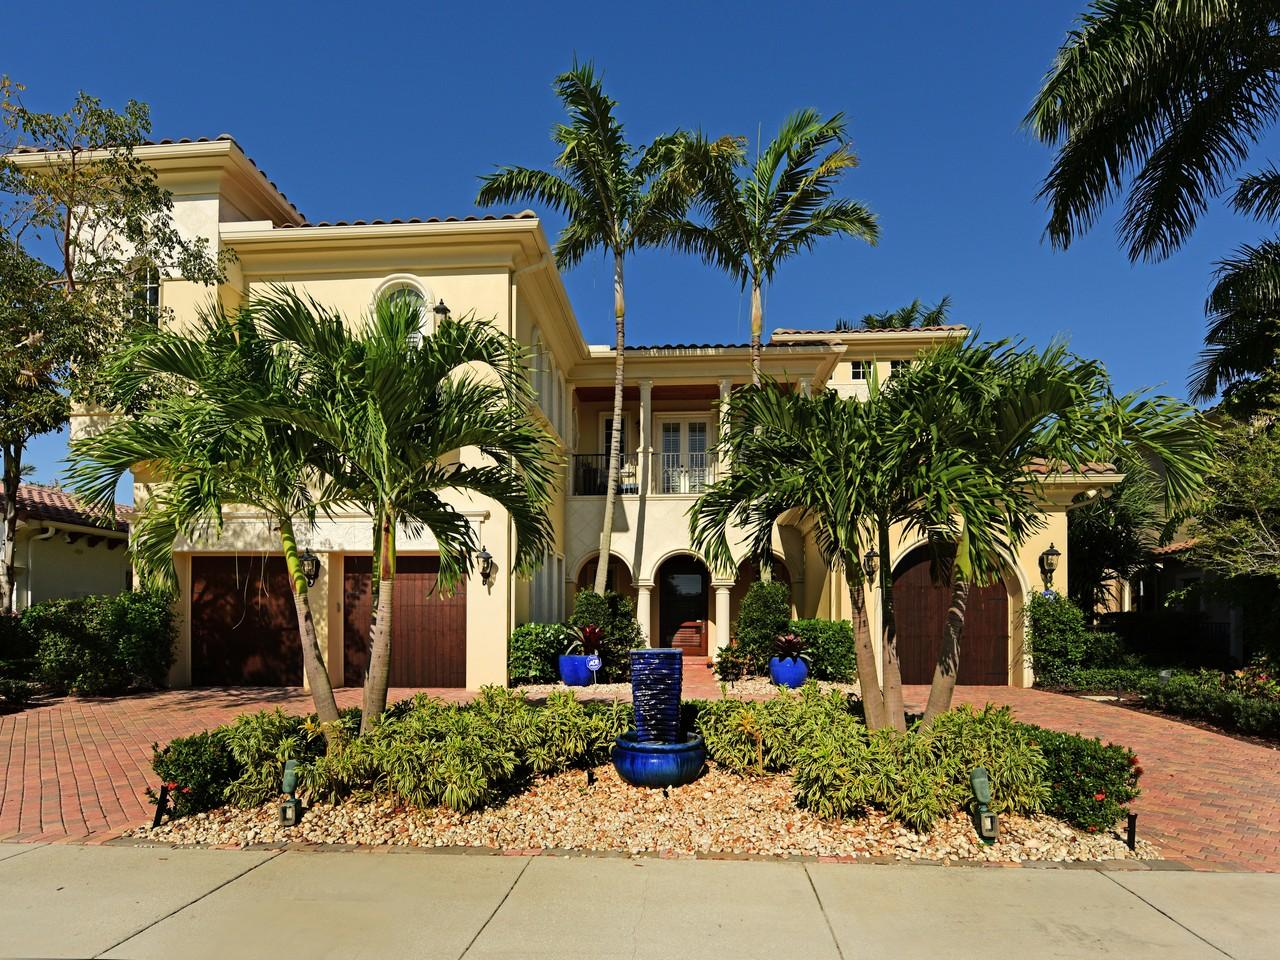 New Home for sale at 11503 Green Bayberry Drive in Palm Beach Gardens